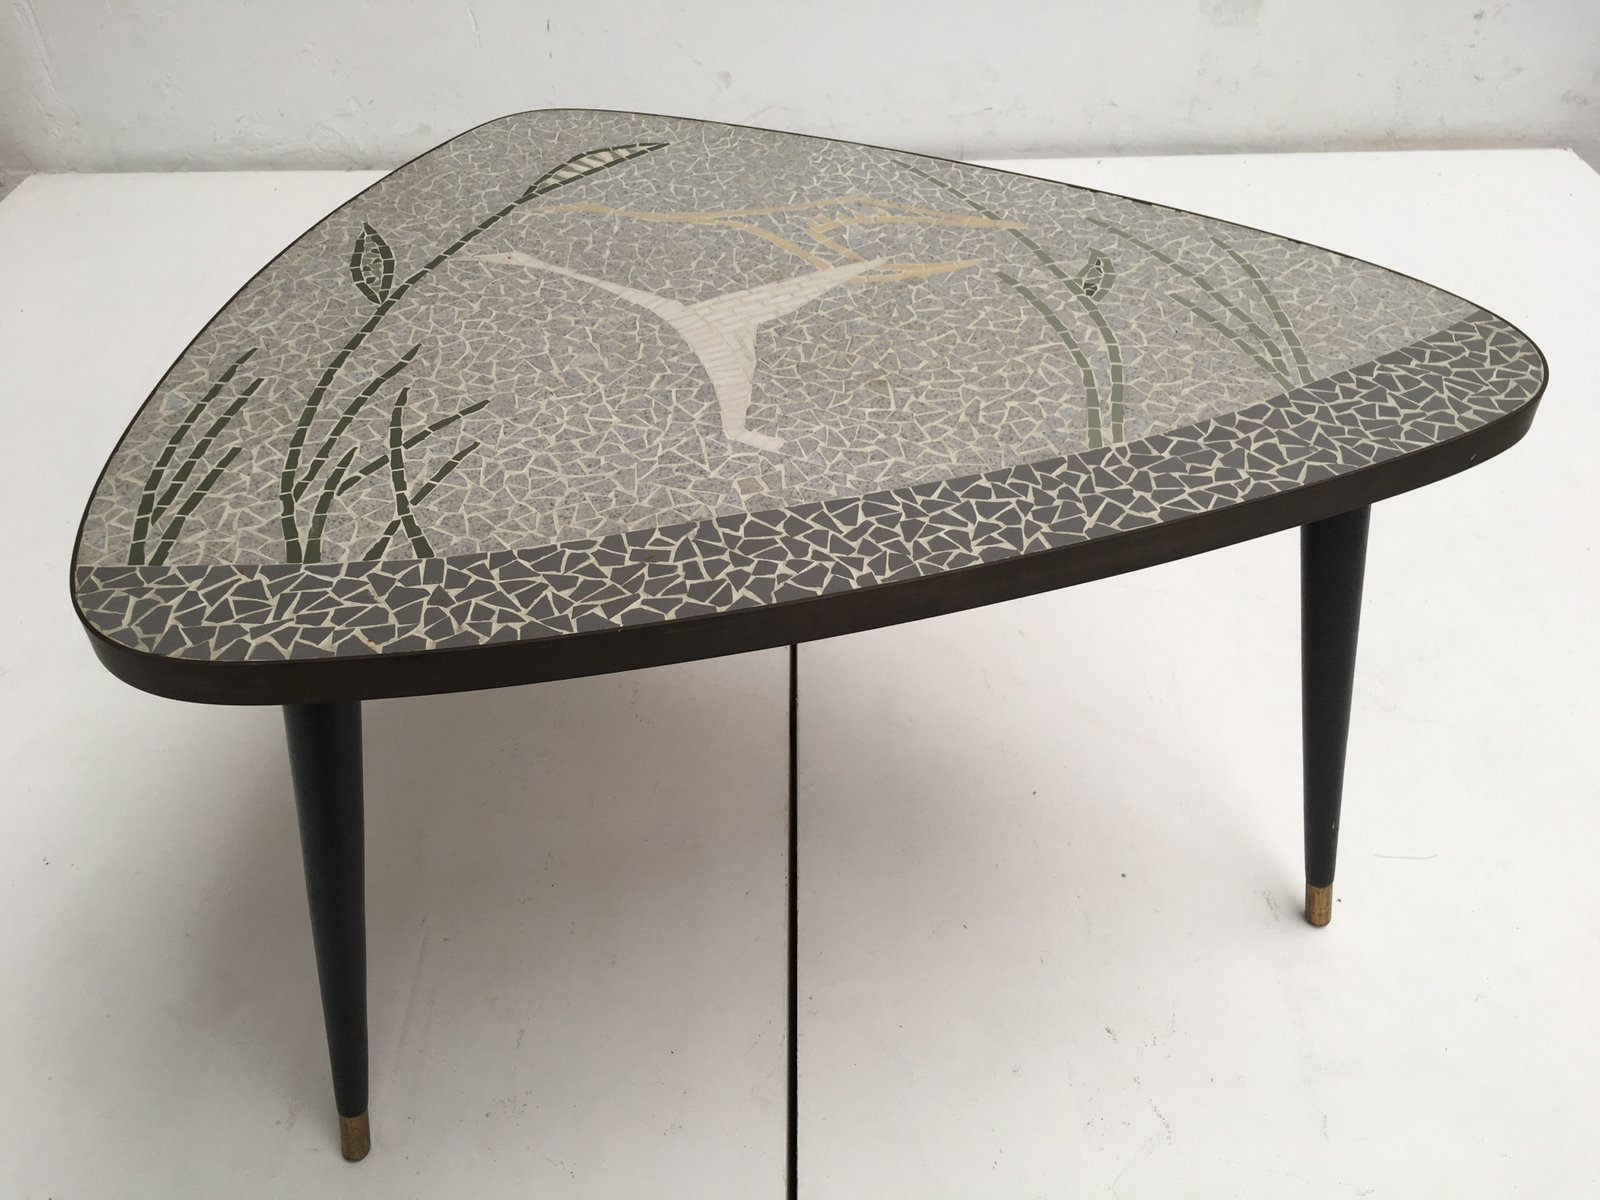 German Brass U0026 Mosaic Inlay Coffee Table Depicting A Flying Bird, 1950s